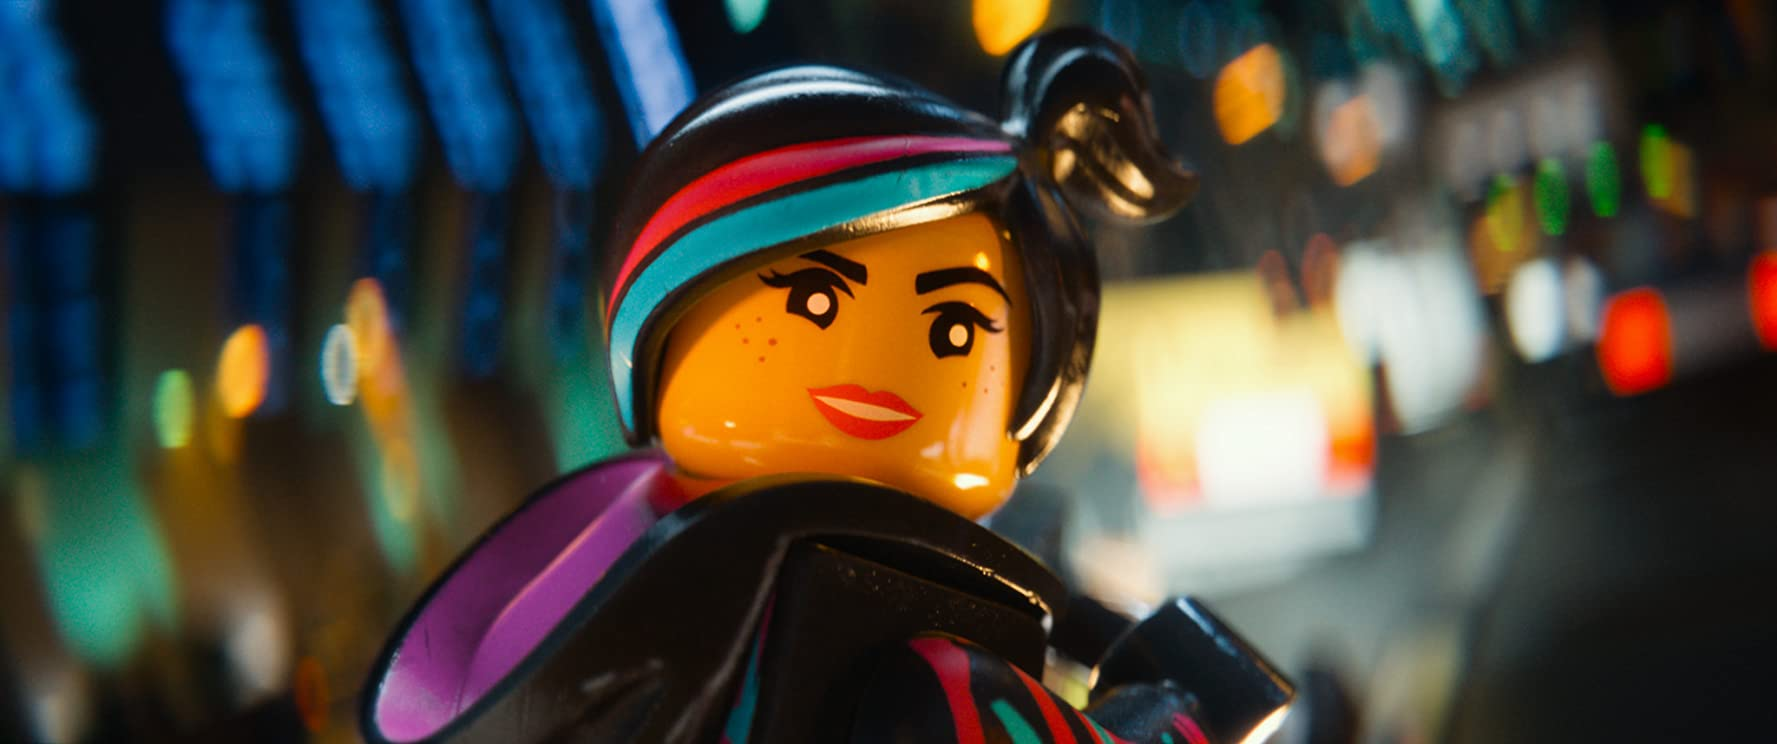 Elizabeth Banks in The Lego Movie 2014